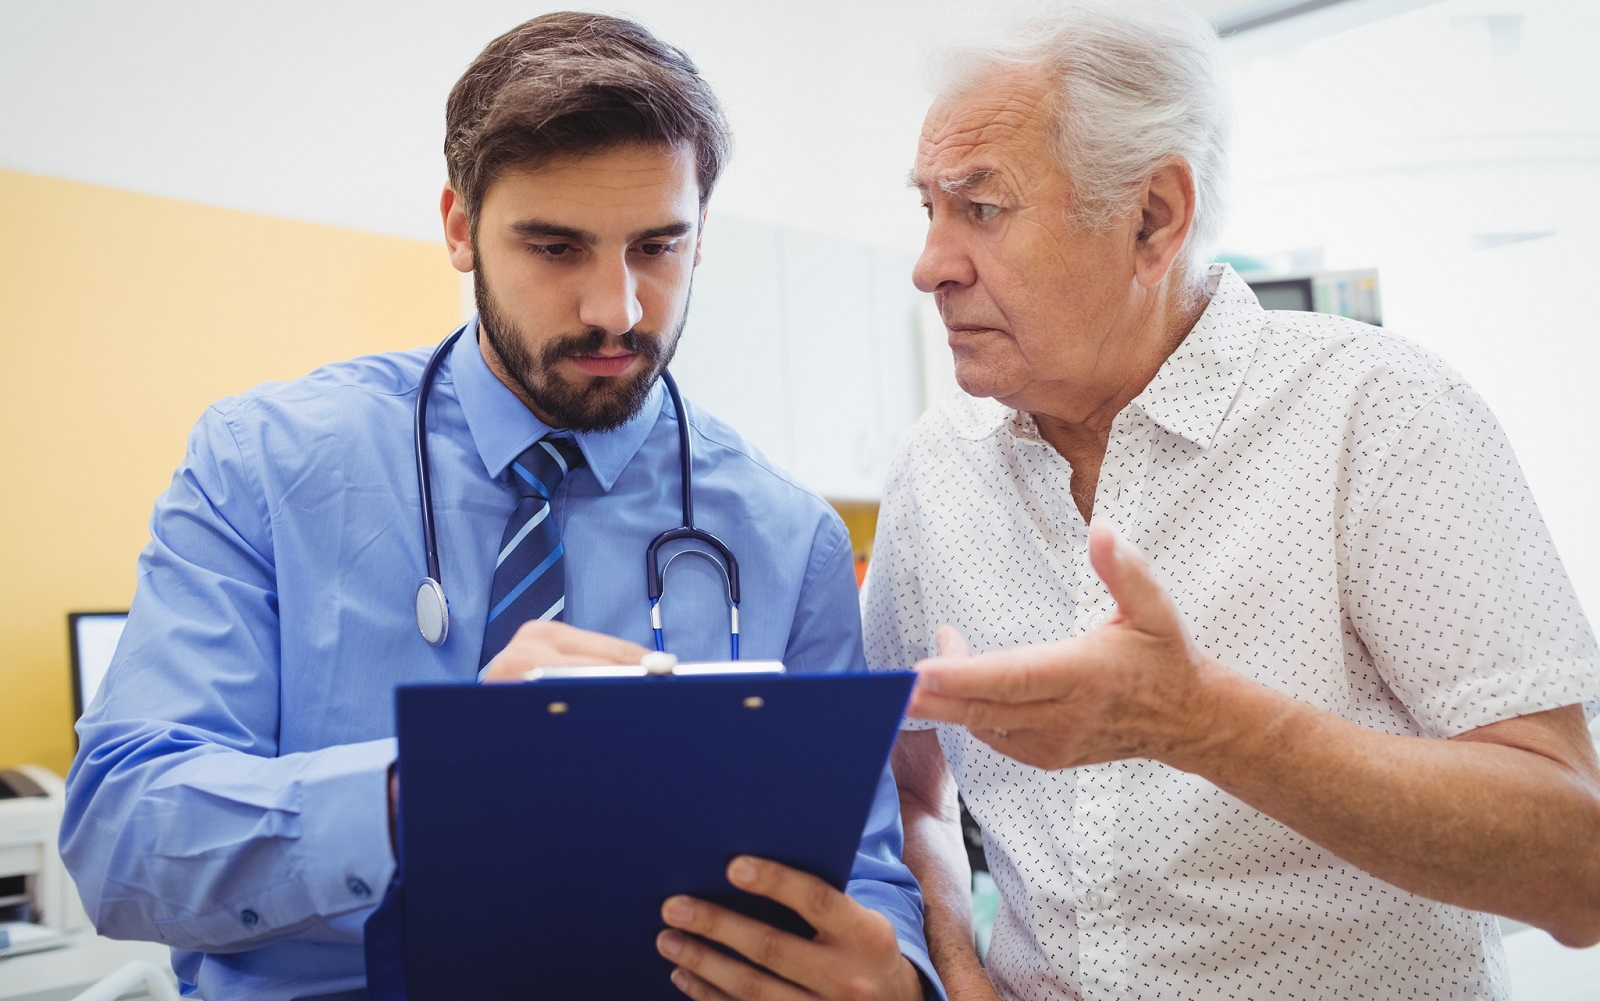 An elderly male patient consulting with a male physician.